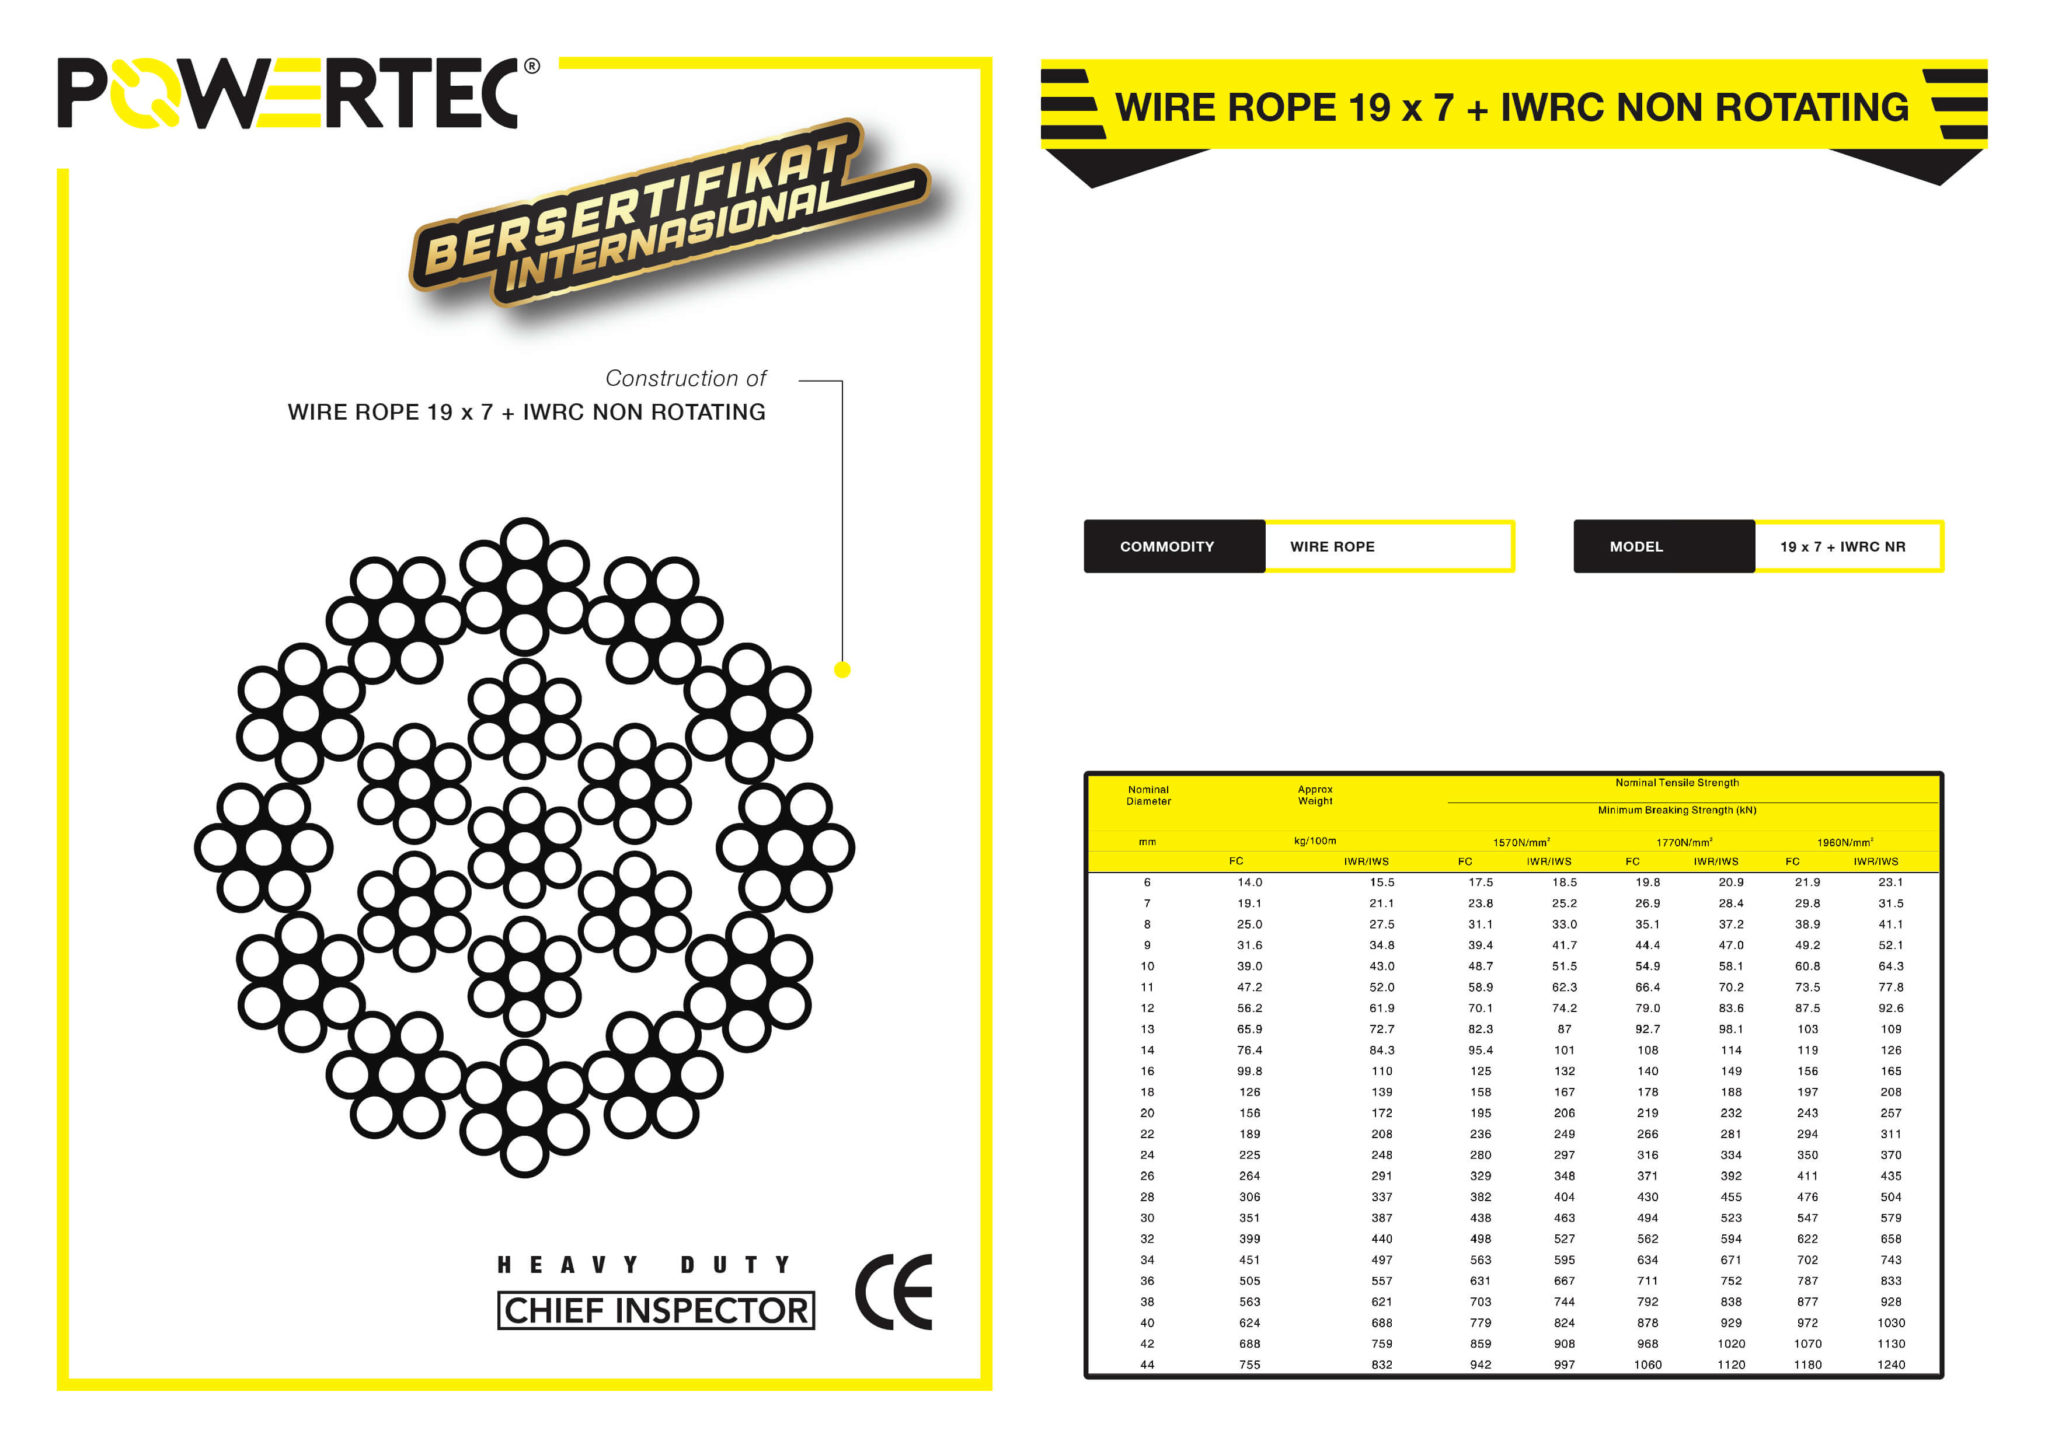 POWERTEC WIRE ROPE 19 x 7 + IWRC NON ROTATING BROCHURE